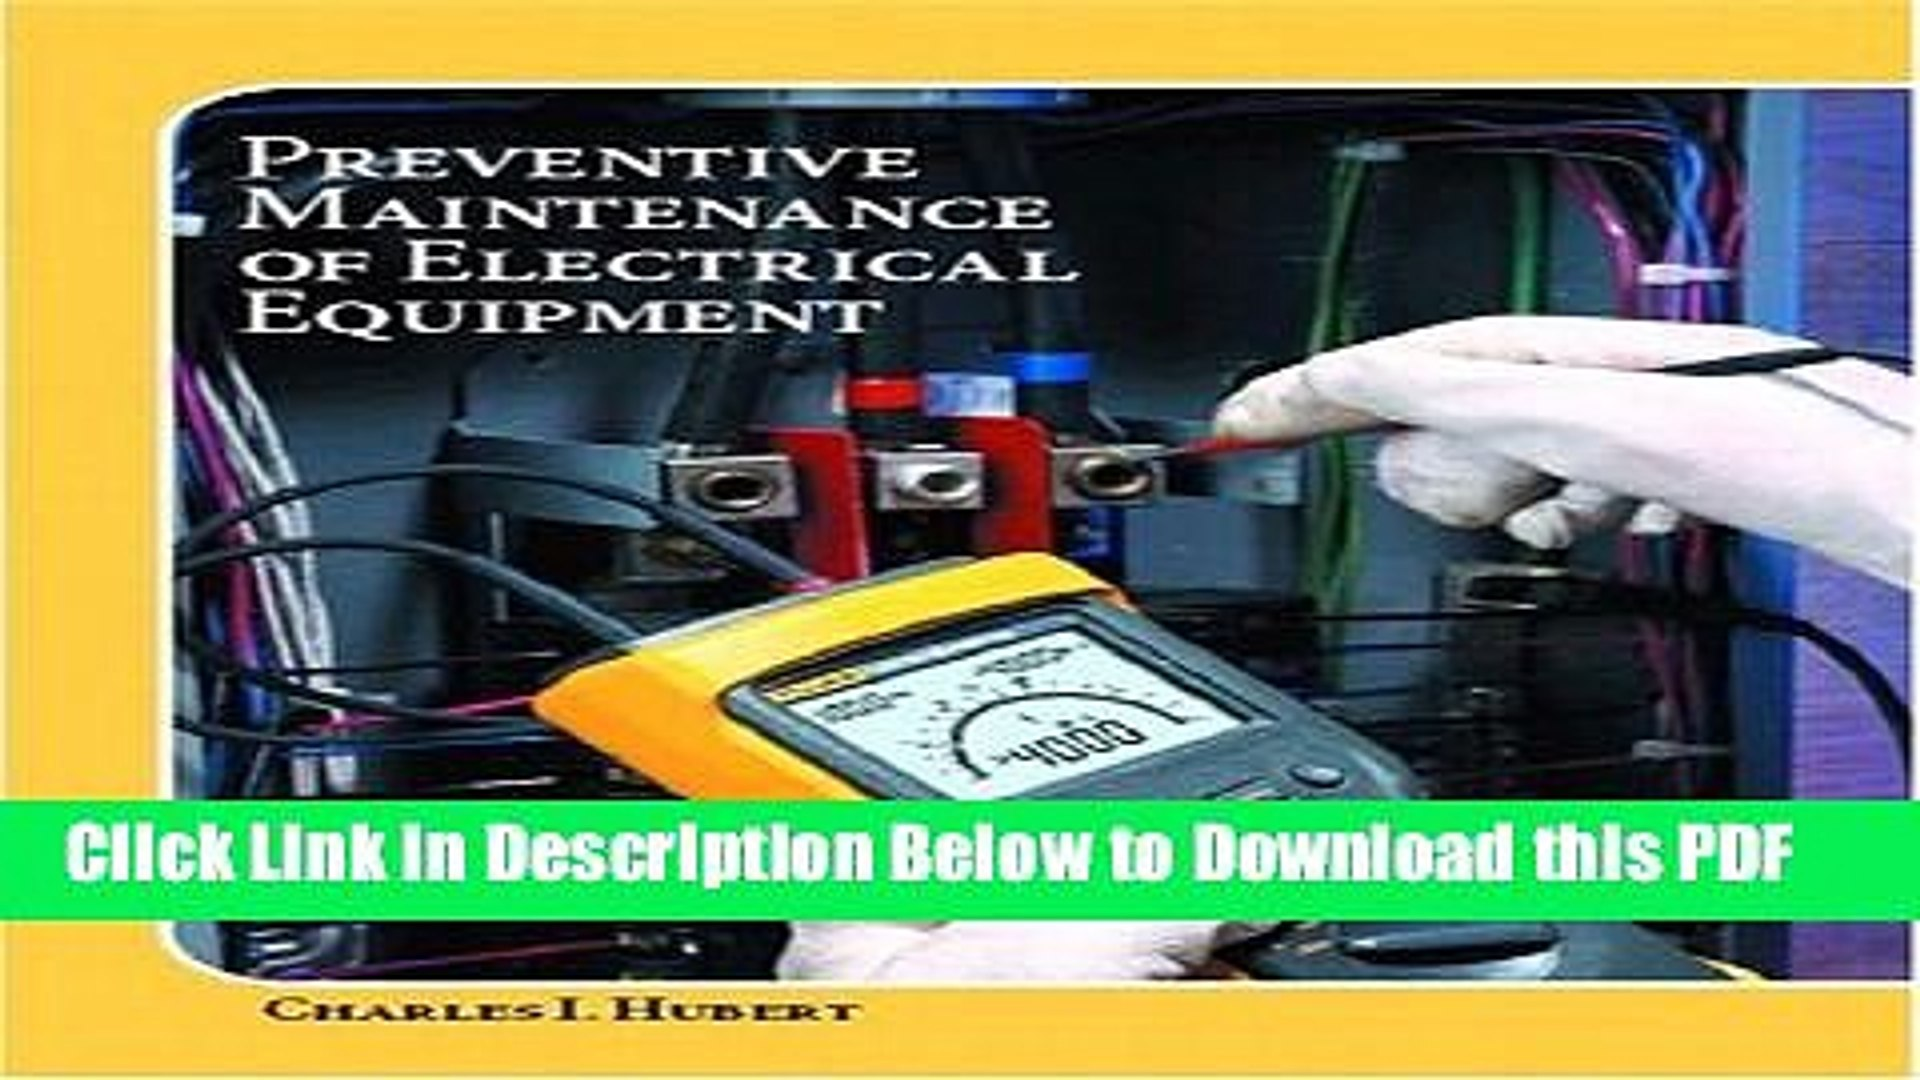 [Read] Operating, Testing, and Preventive Maintenance of Electrical Power  Apparatus Full Online